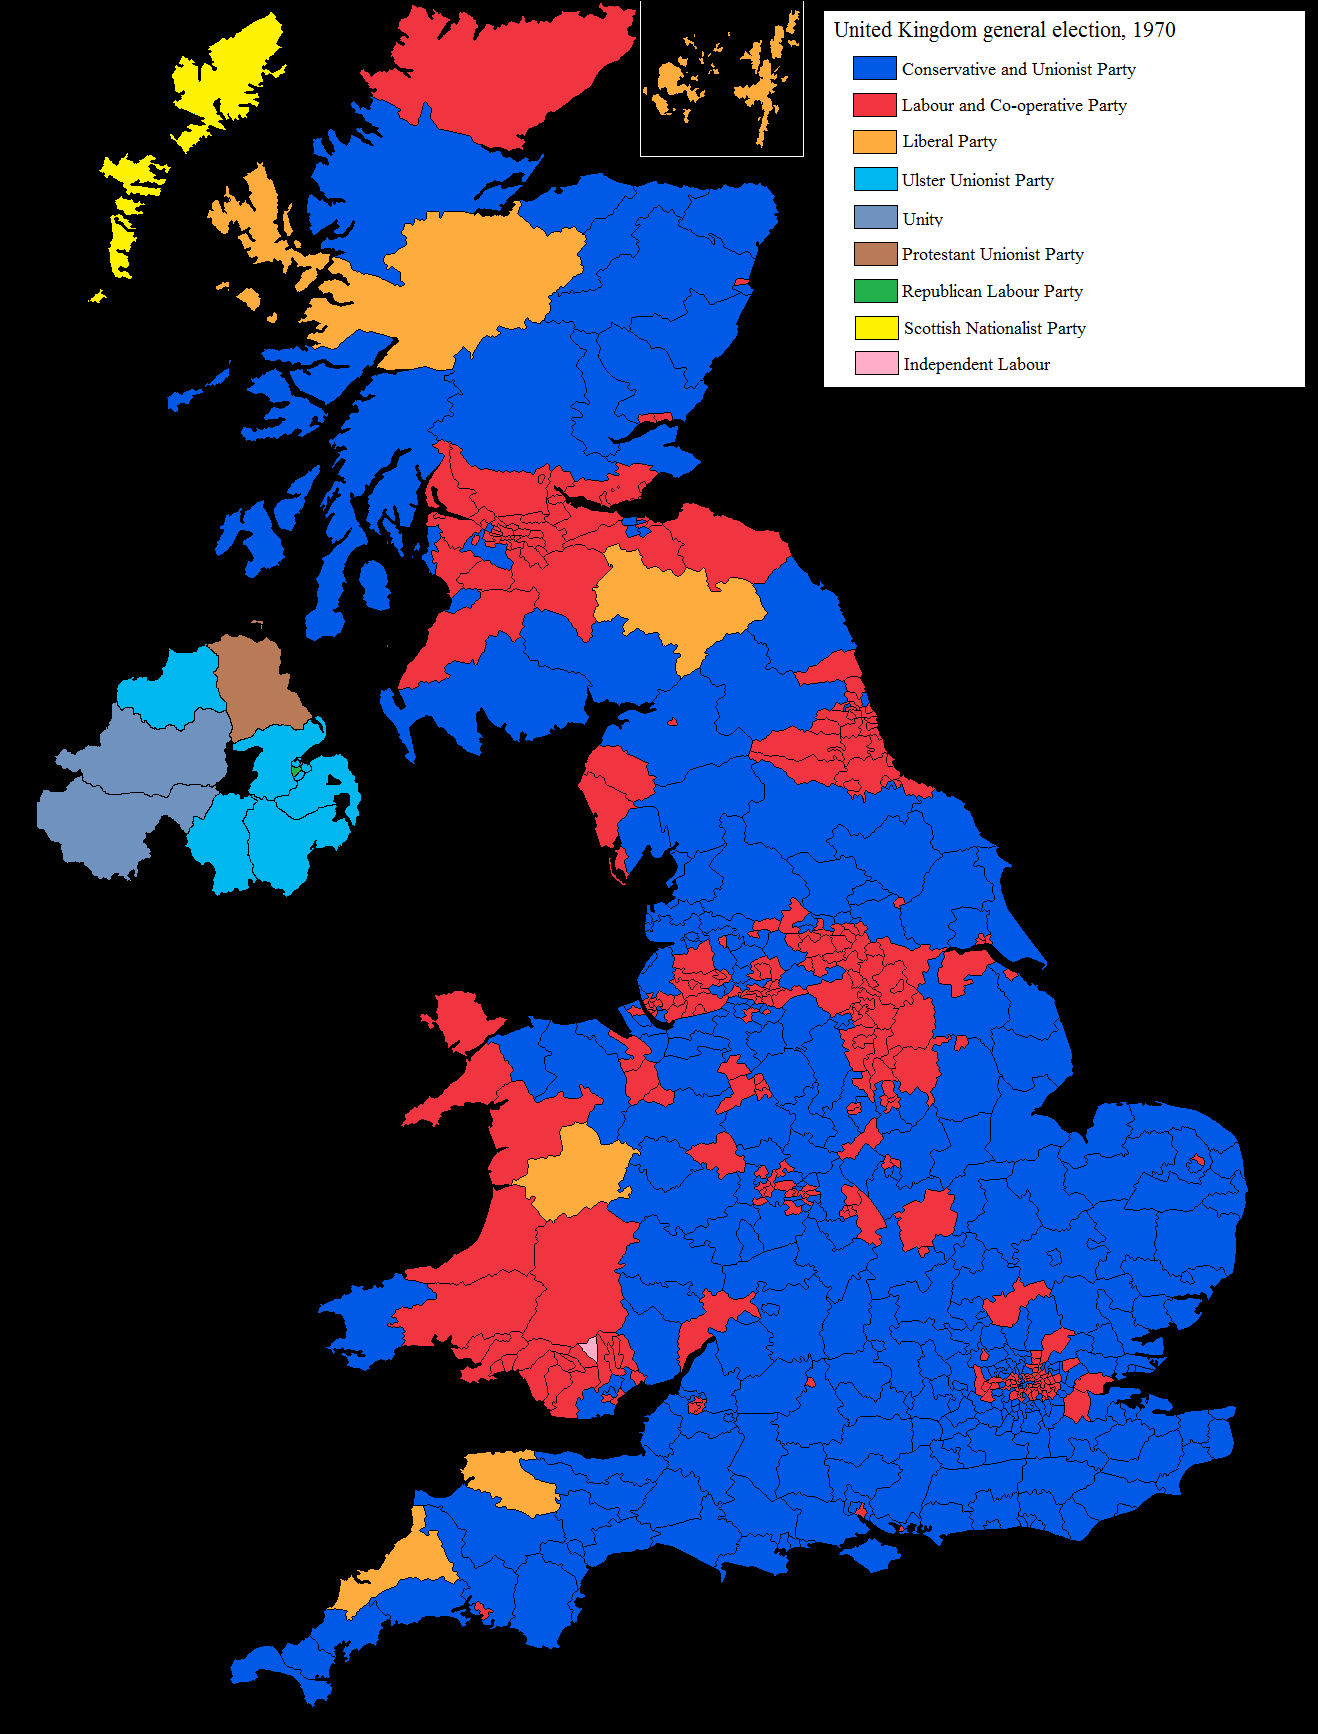 Resources Uk General Election Maps Alternatehistory Com Wiki